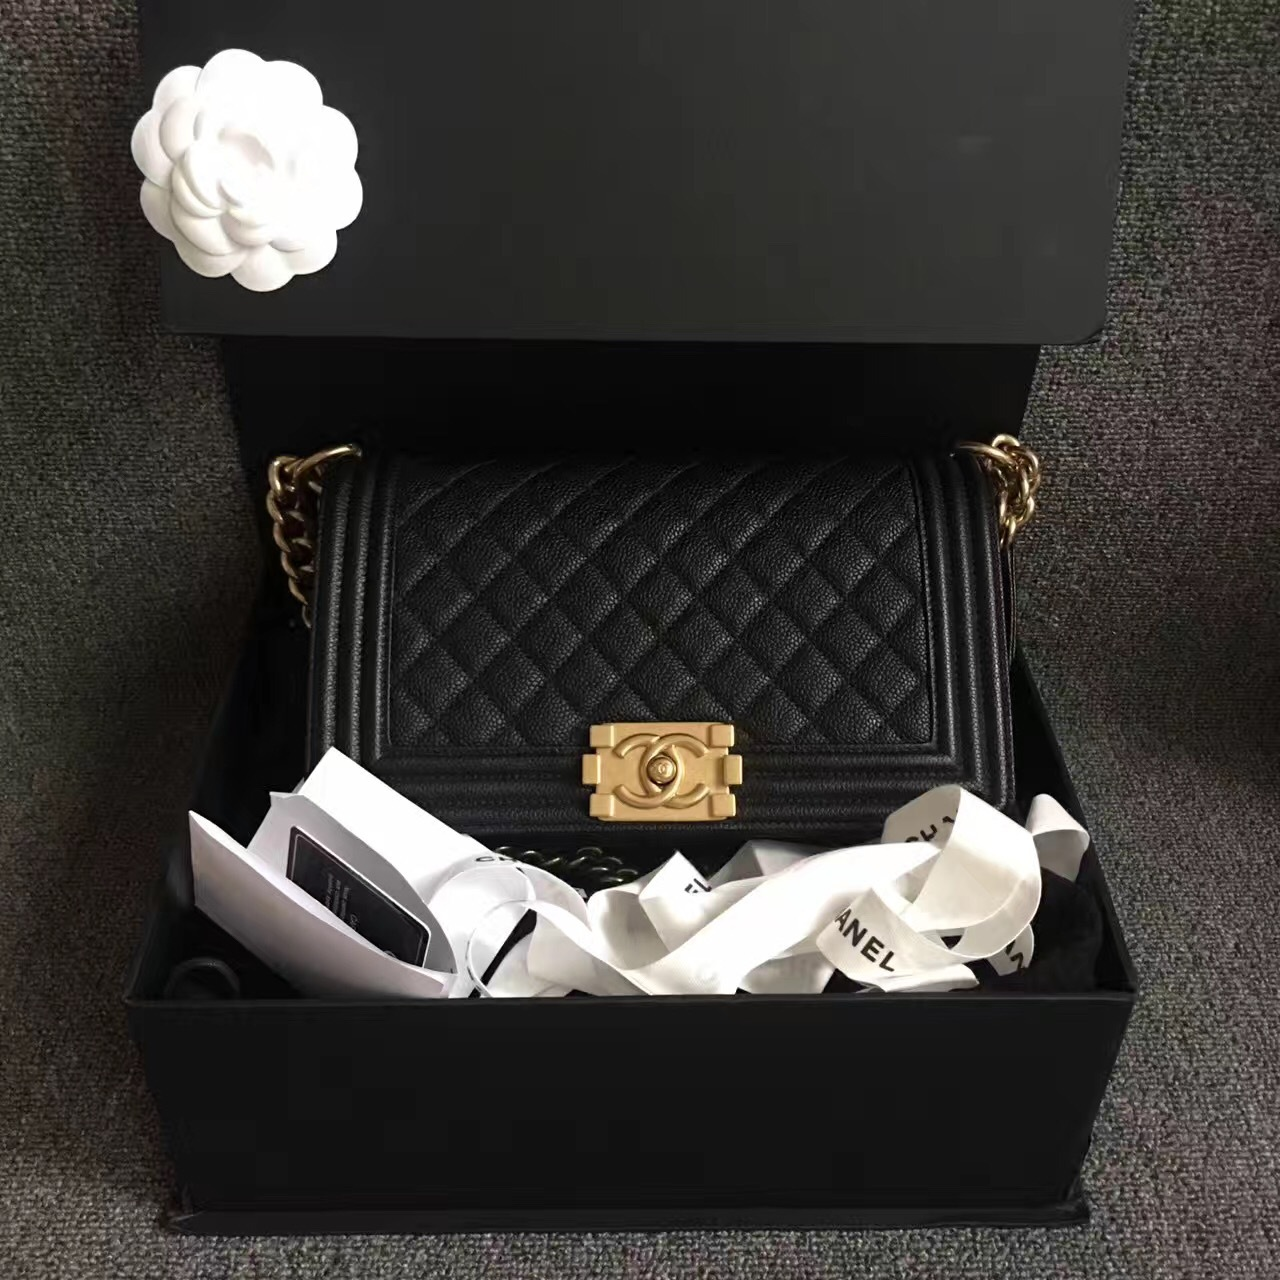 2ae01b1e1f4d9c Img 6883. Img 6883. Previous. AUTHENTIC NEW CHANEL 2017 LE BOY BLACK CAVIAR  MEDIUM FLAP BAG GHW RARE · AUTHENTIC NEW CHANEL ...